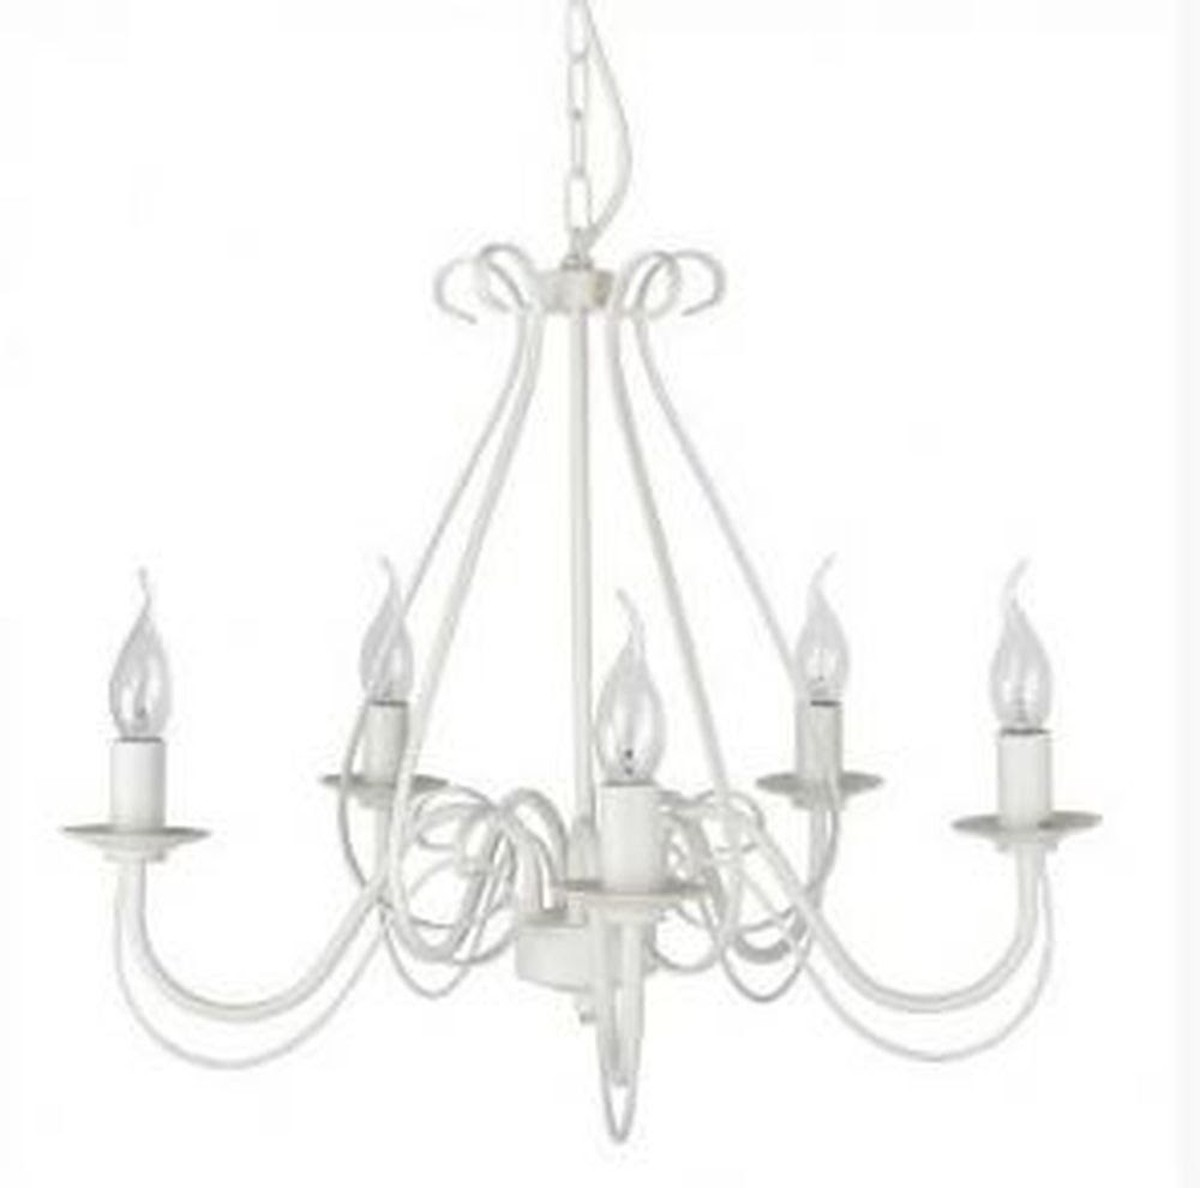 Curlew secondhand marquees chandeliers 100x 5 way chandelier black chandeliers for sale secondhand chandeliers aloadofball Gallery